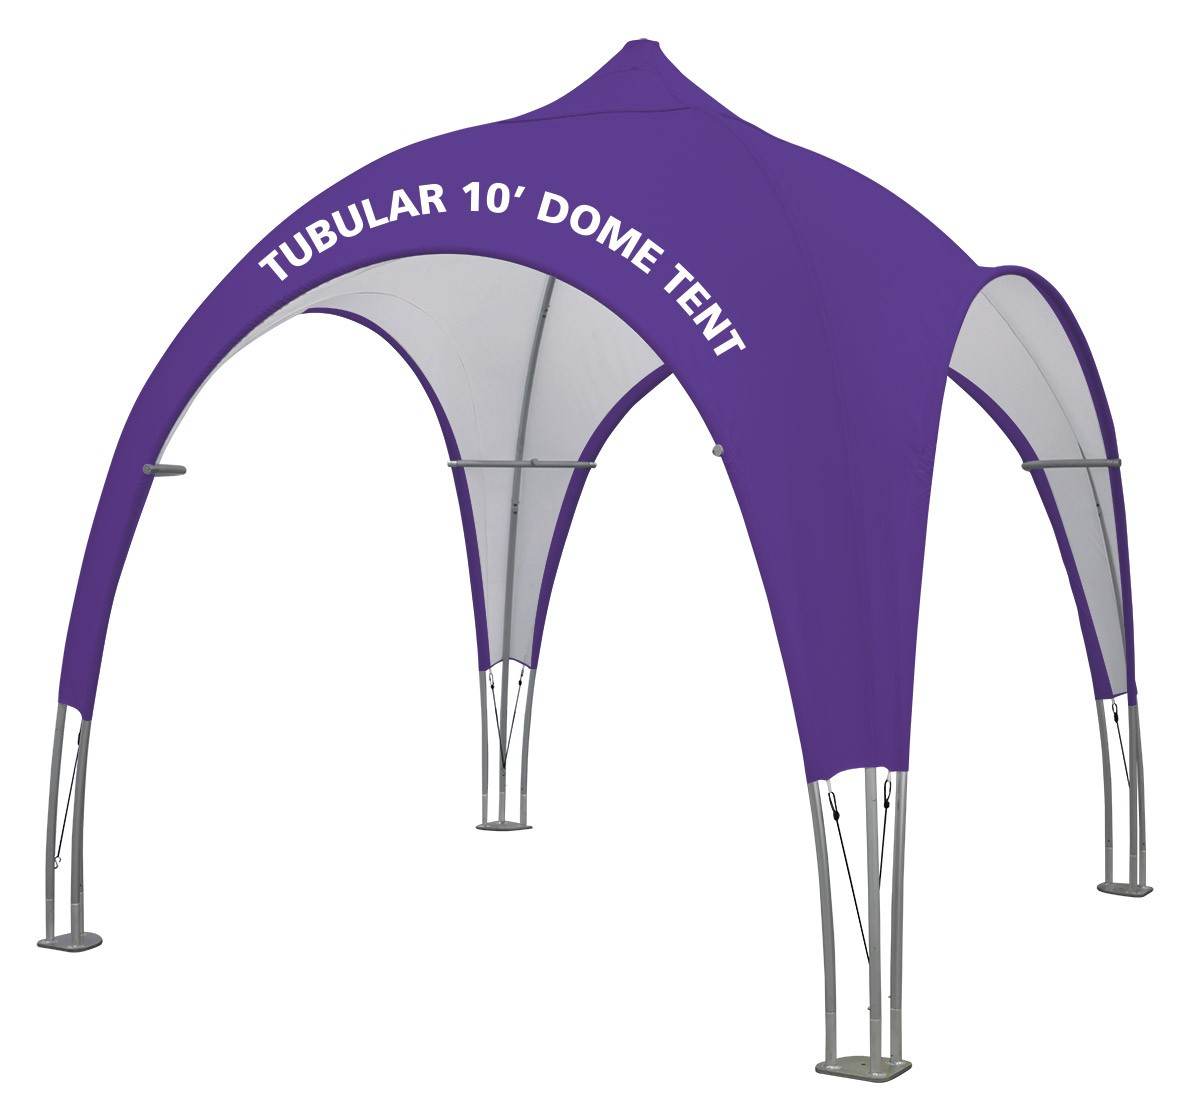 10' Dome Tent